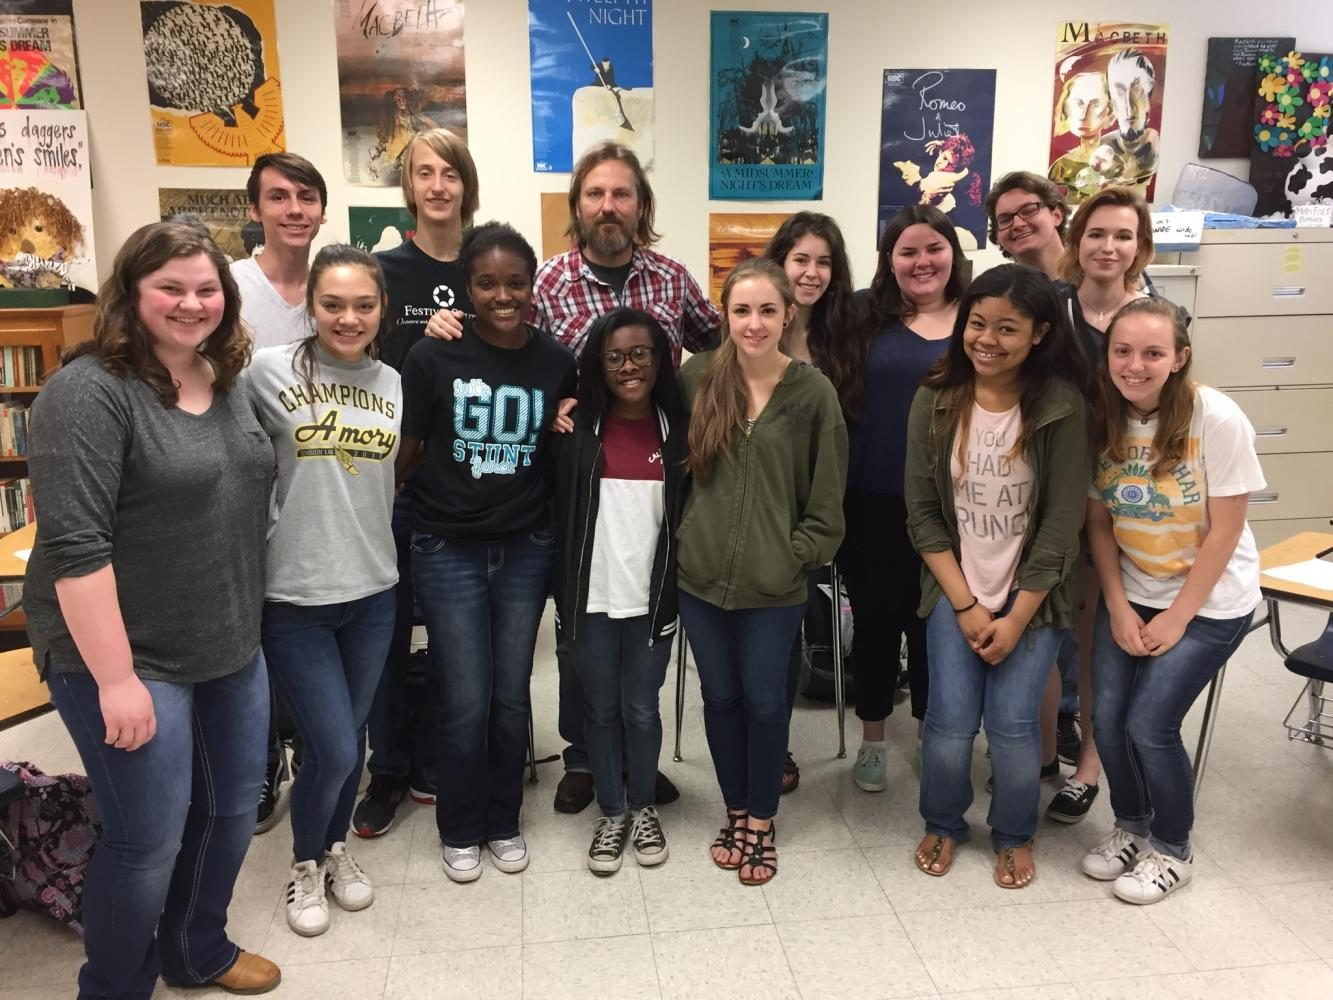 The+first+class+of+Creative+Writing+students+pose+with+Micheal+Farris+Smith+during+his+visit+to+class.